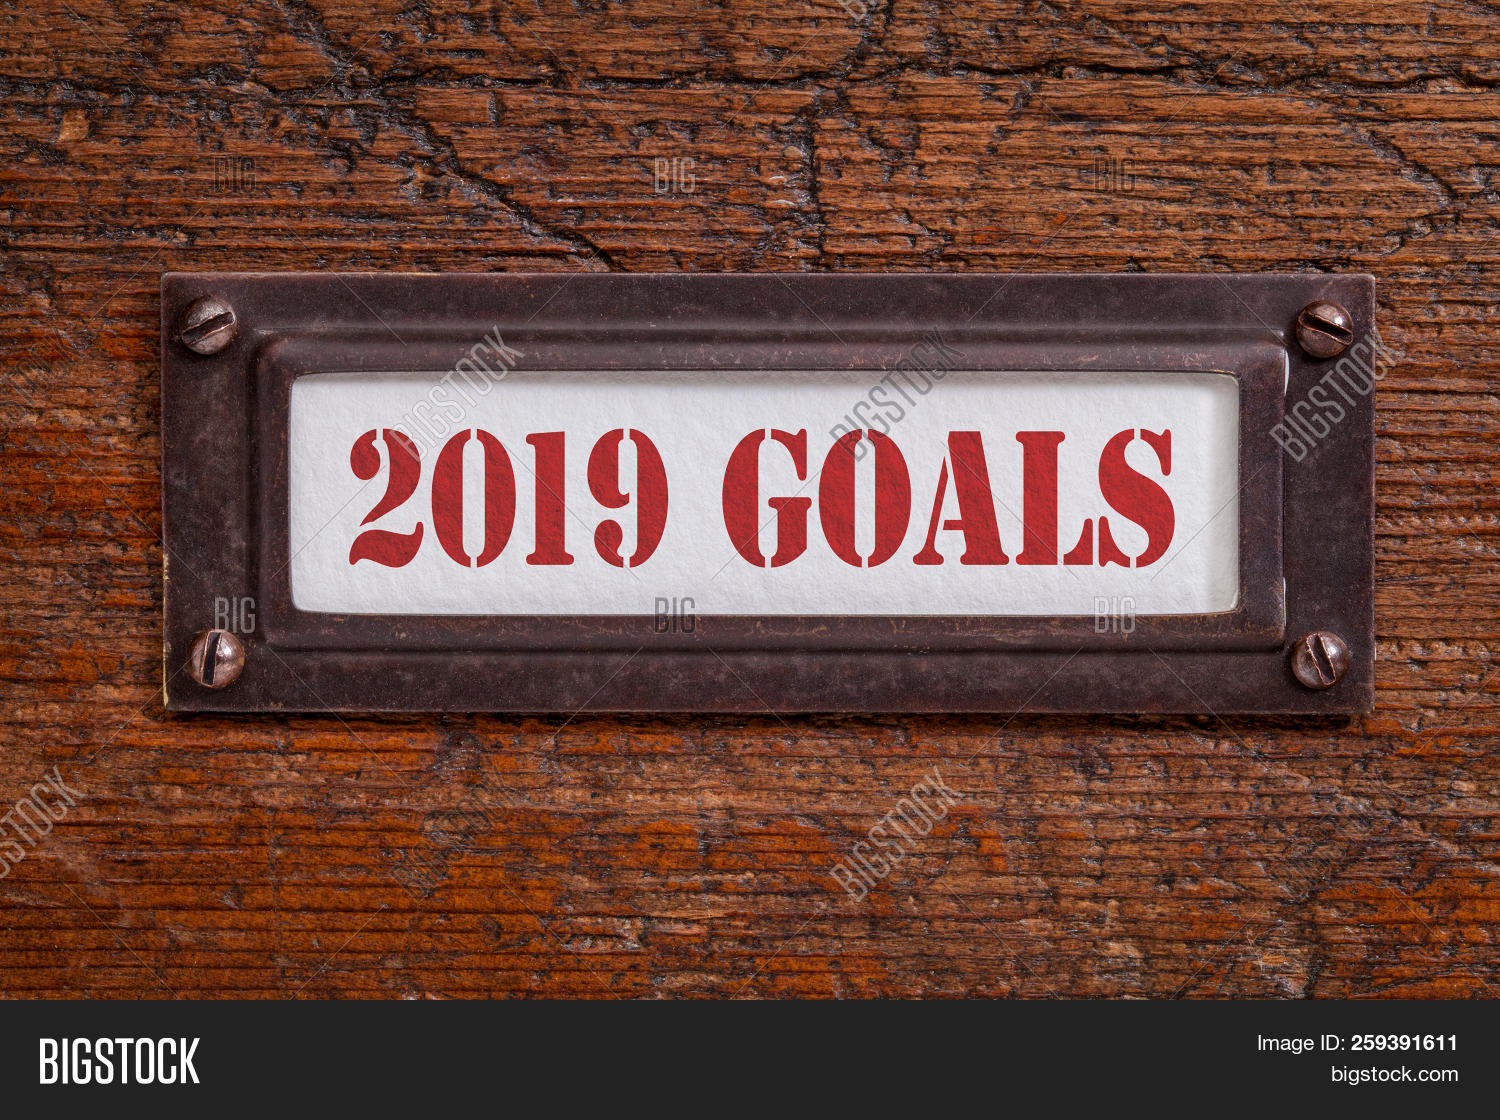 2019 goals  - a label on a grunge wooden file cabinet, New Year goals and resolutions concept